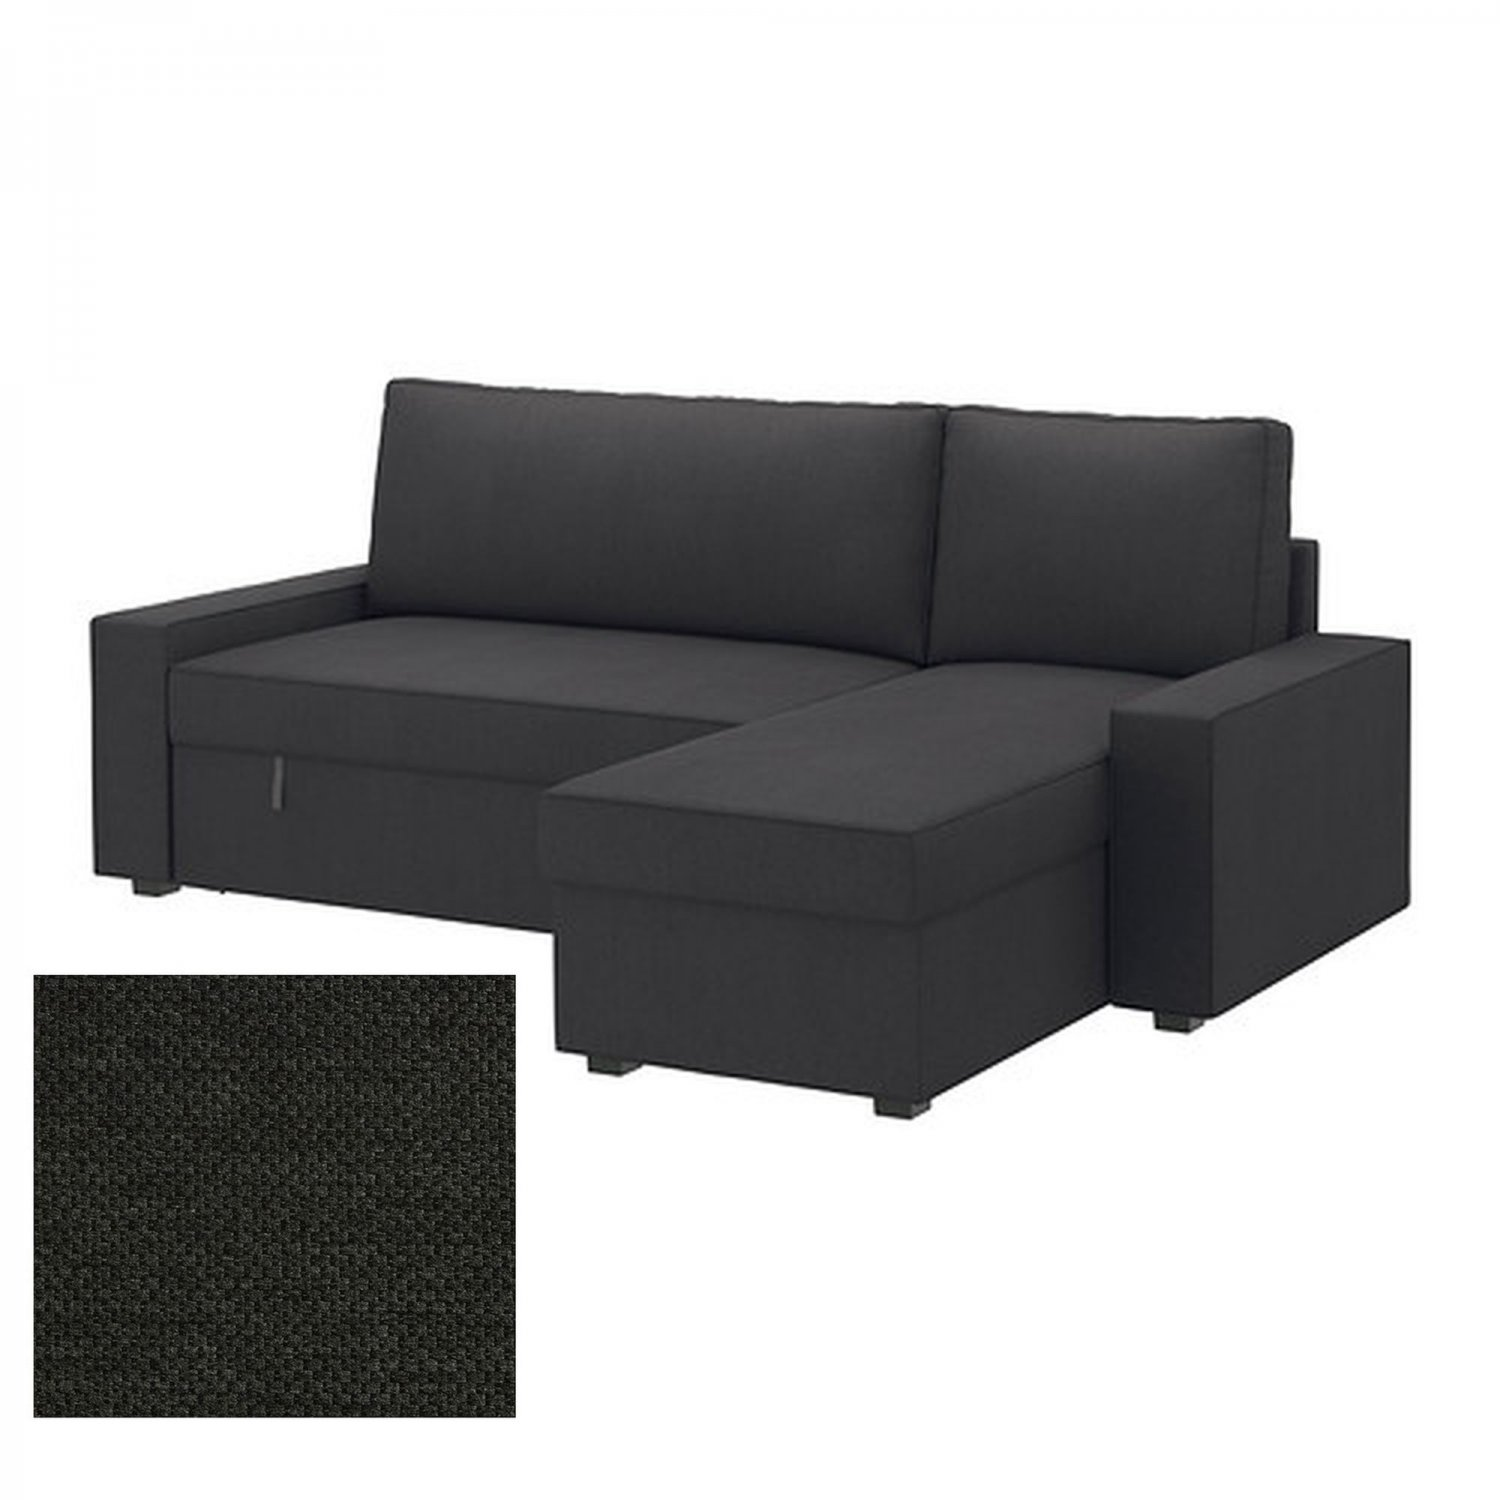 Ikea vilasund sofa bed with chaise longue slipcover for Chaise longue double sofa bed